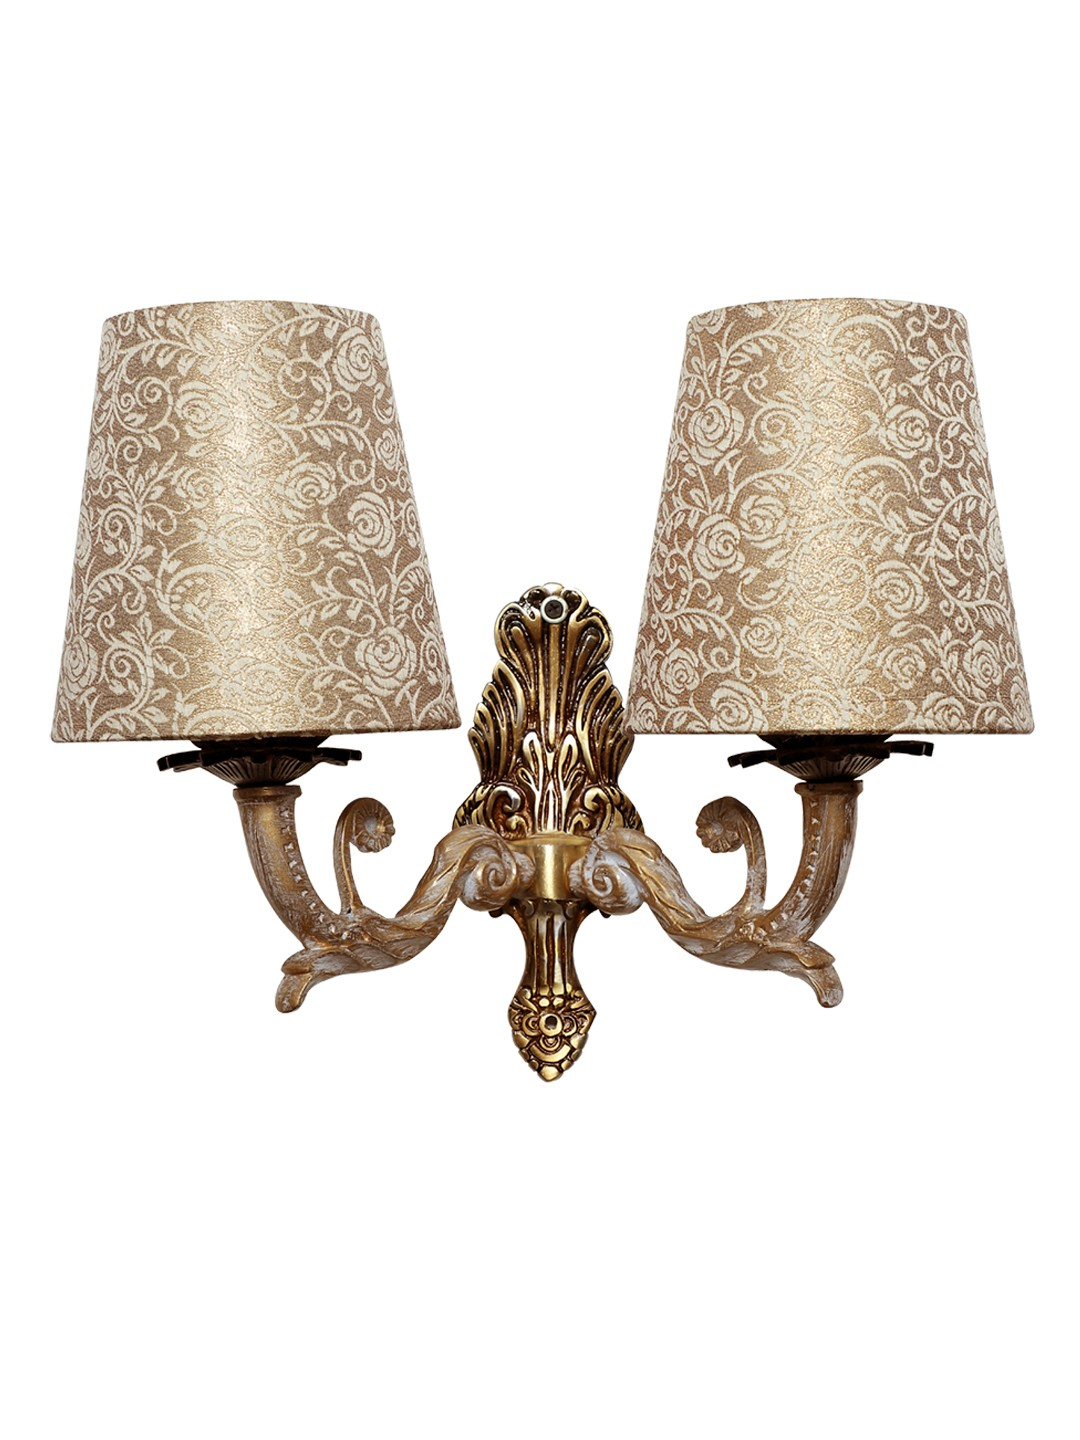 Golden White Double Wall Sconce in Brocade Shades